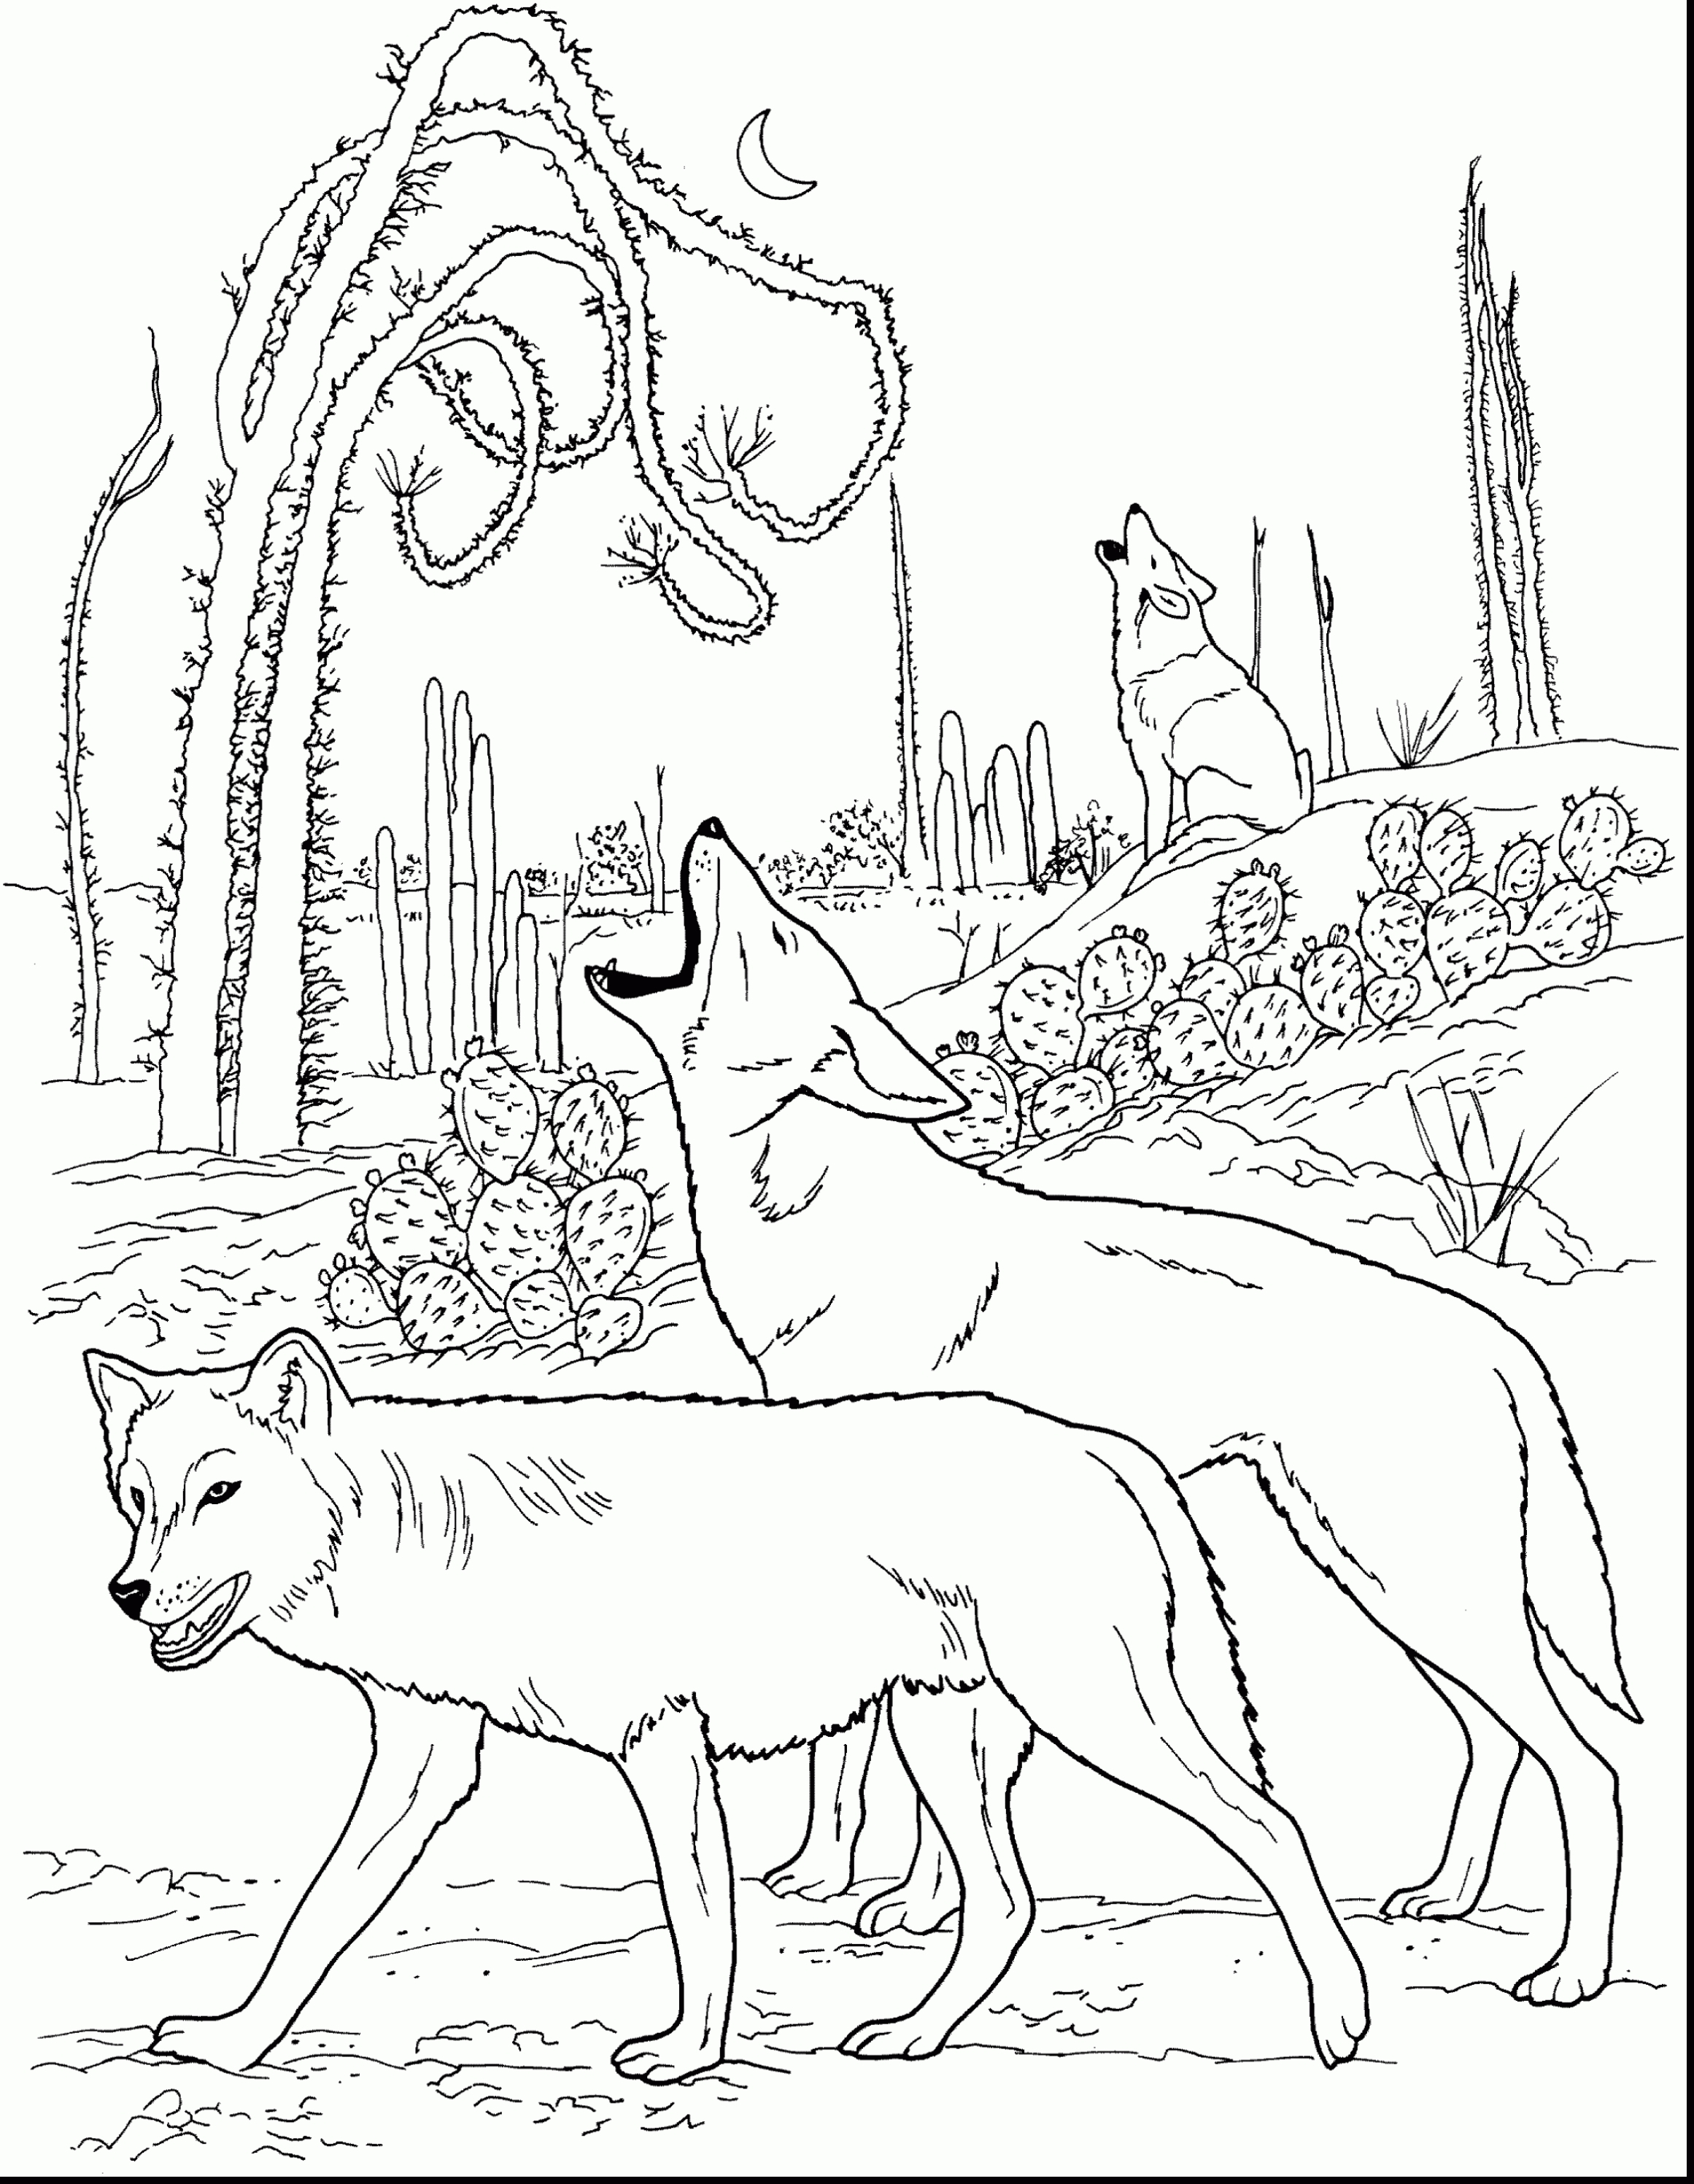 Wolf Pup Coloring Pages Printable Free Coloring Books Gallery Of Wolf Coloring Pages Elegant Free Printable Wolf Coloring Pages for Download